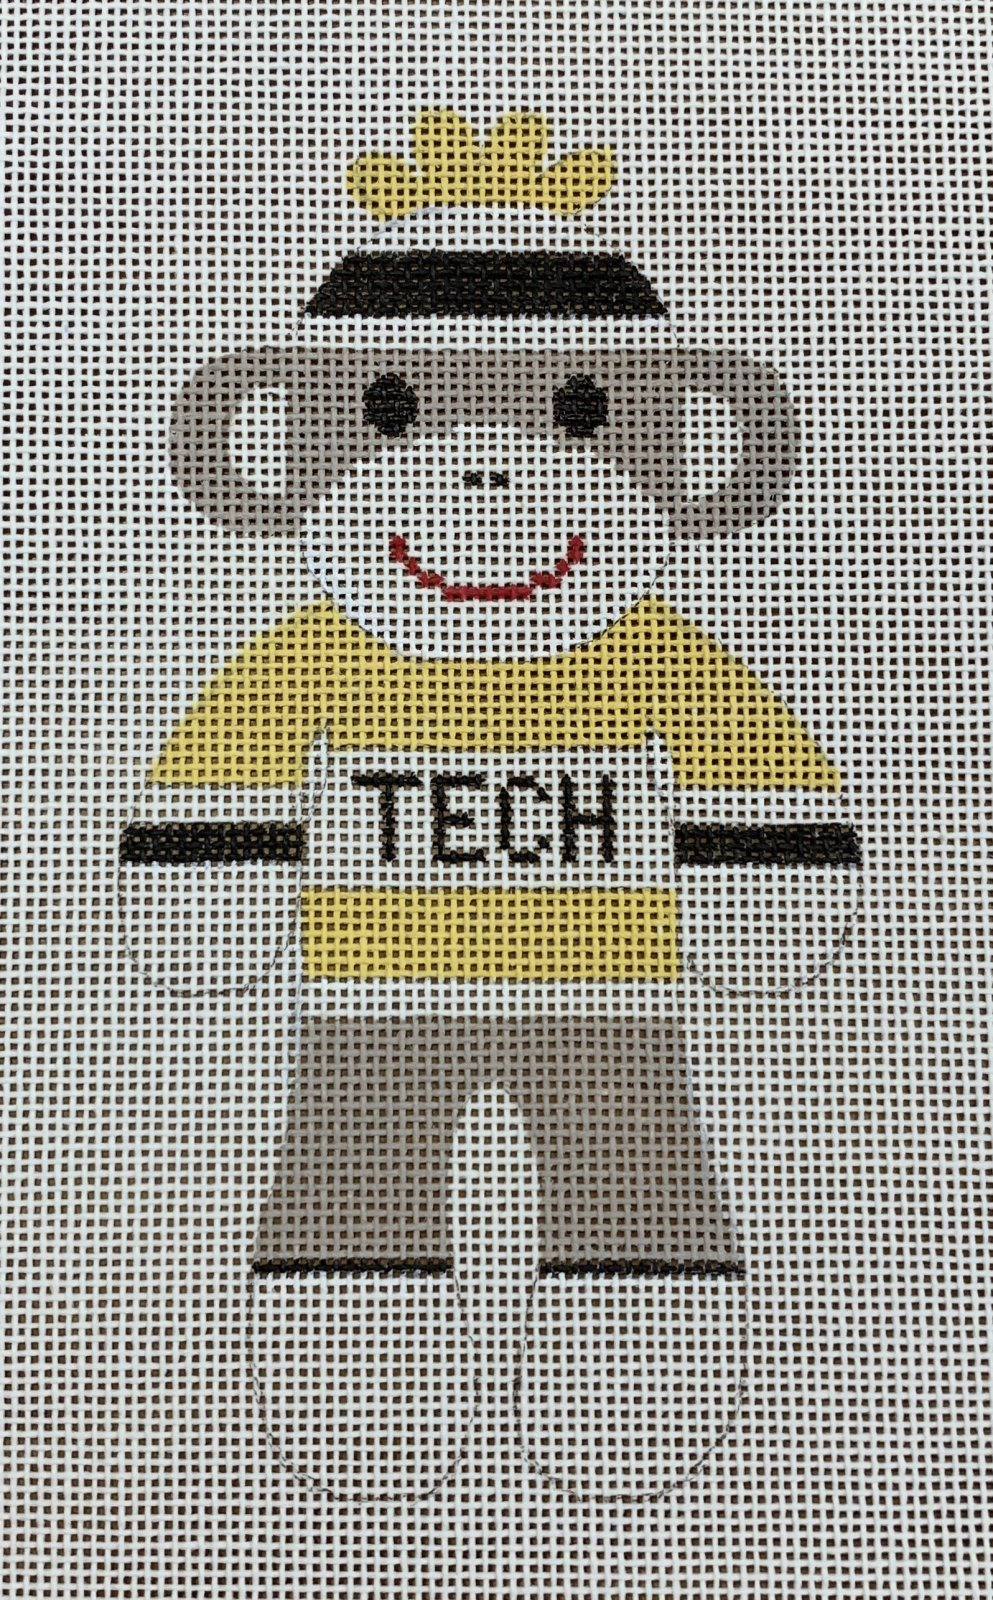 Sock Monkey - Georgia Tech